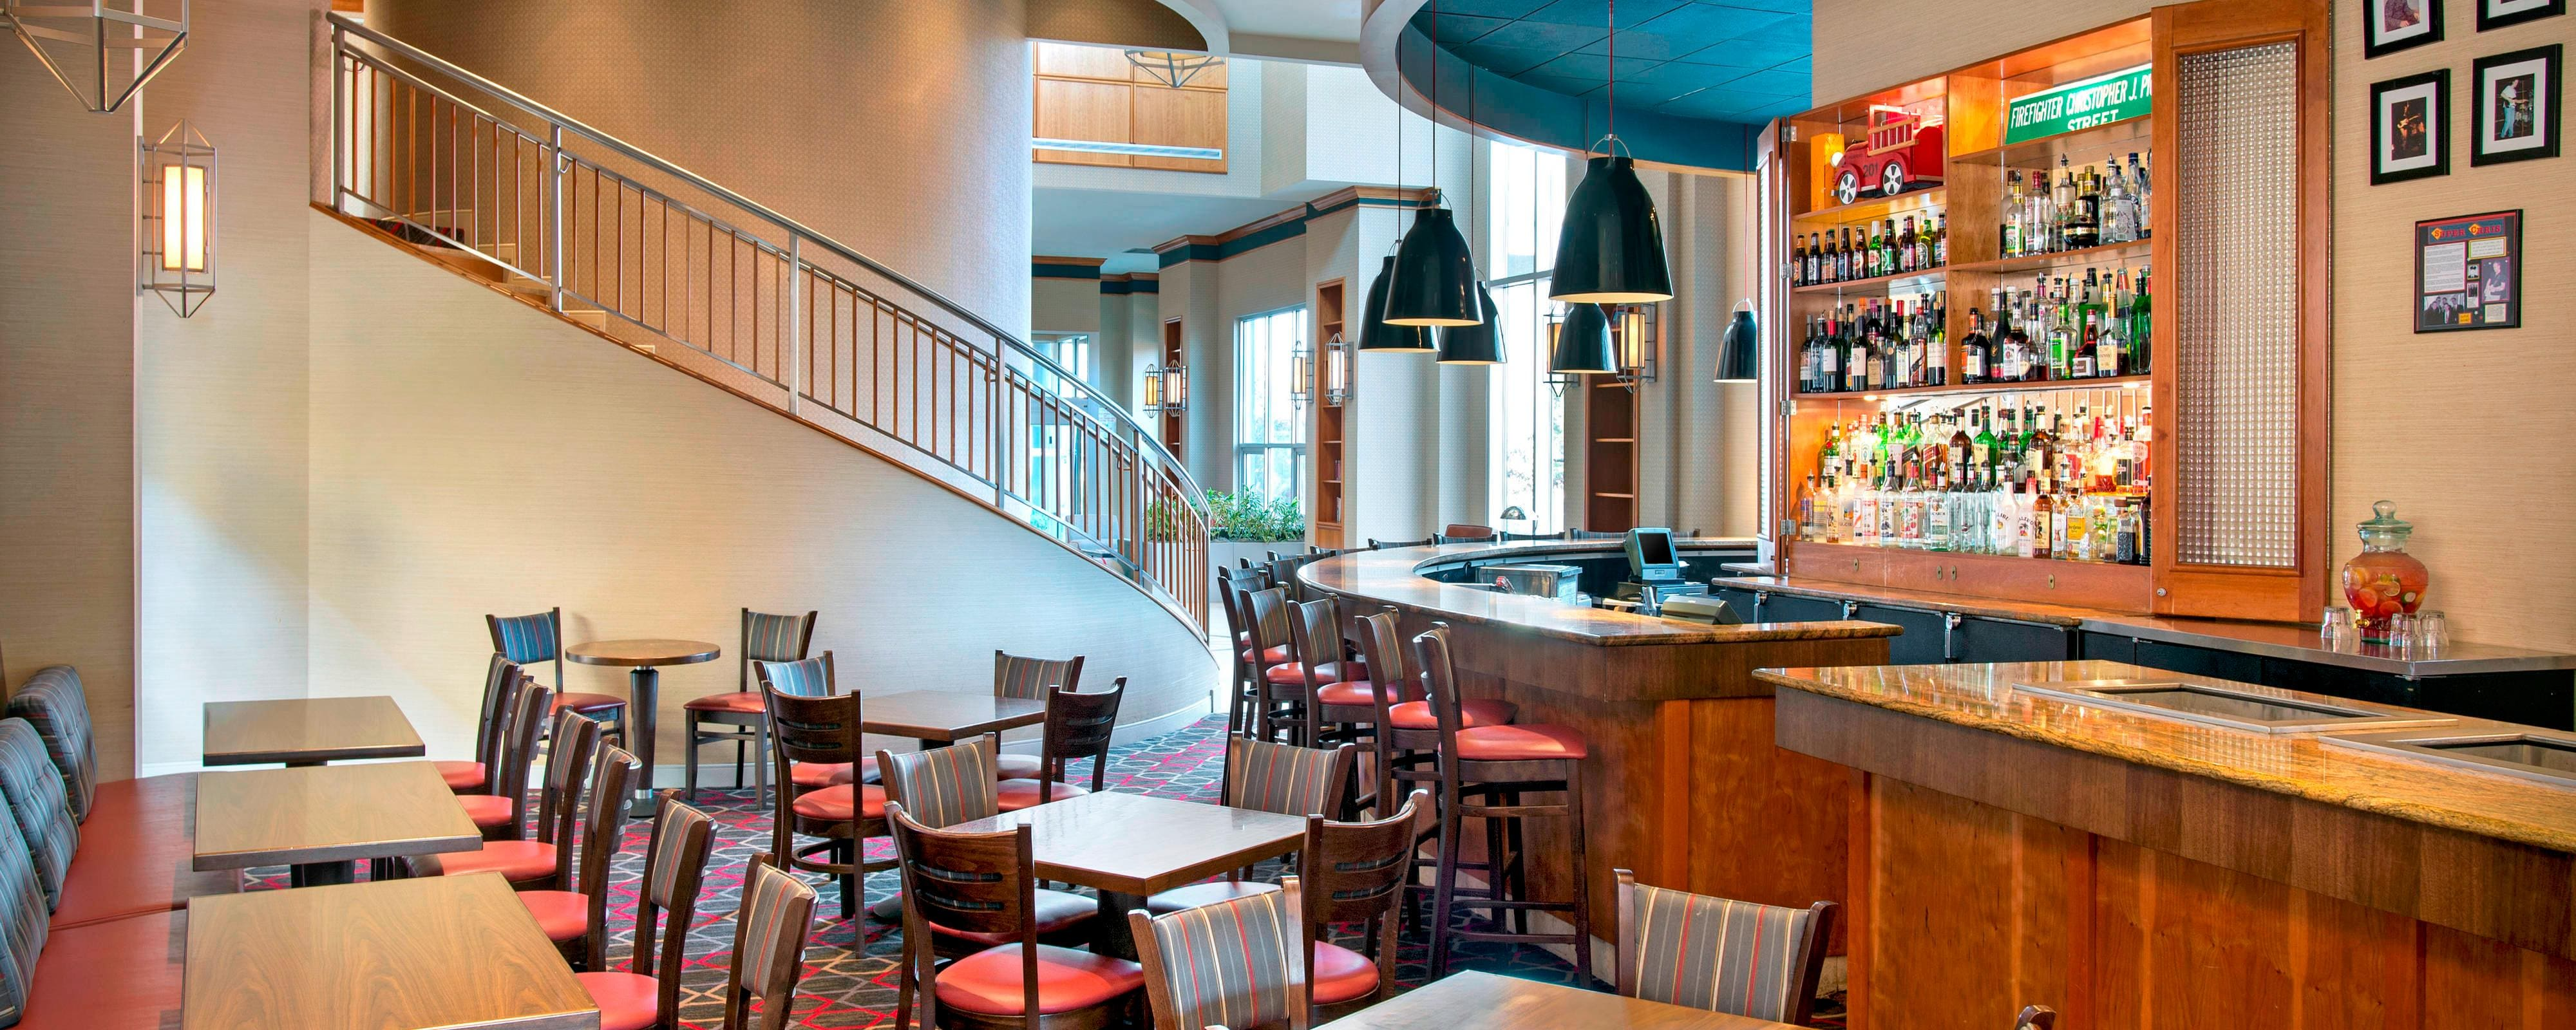 Plainview Restaurants In Ny Four Points By Sheraton